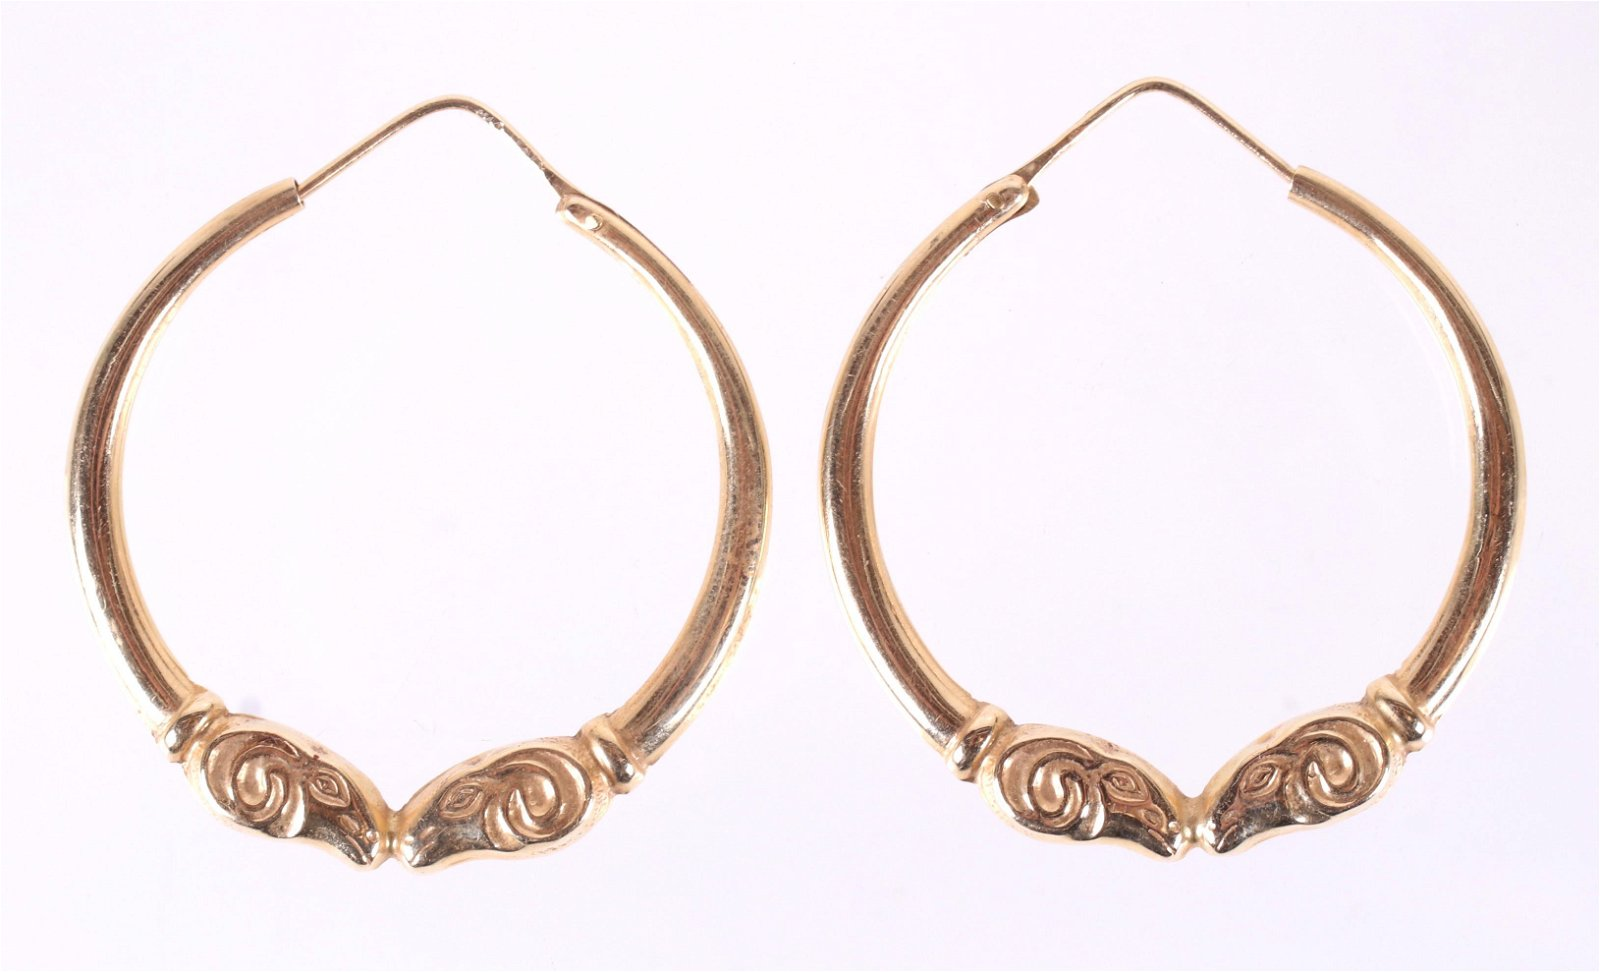 A Pair of 14k Gold Earrings